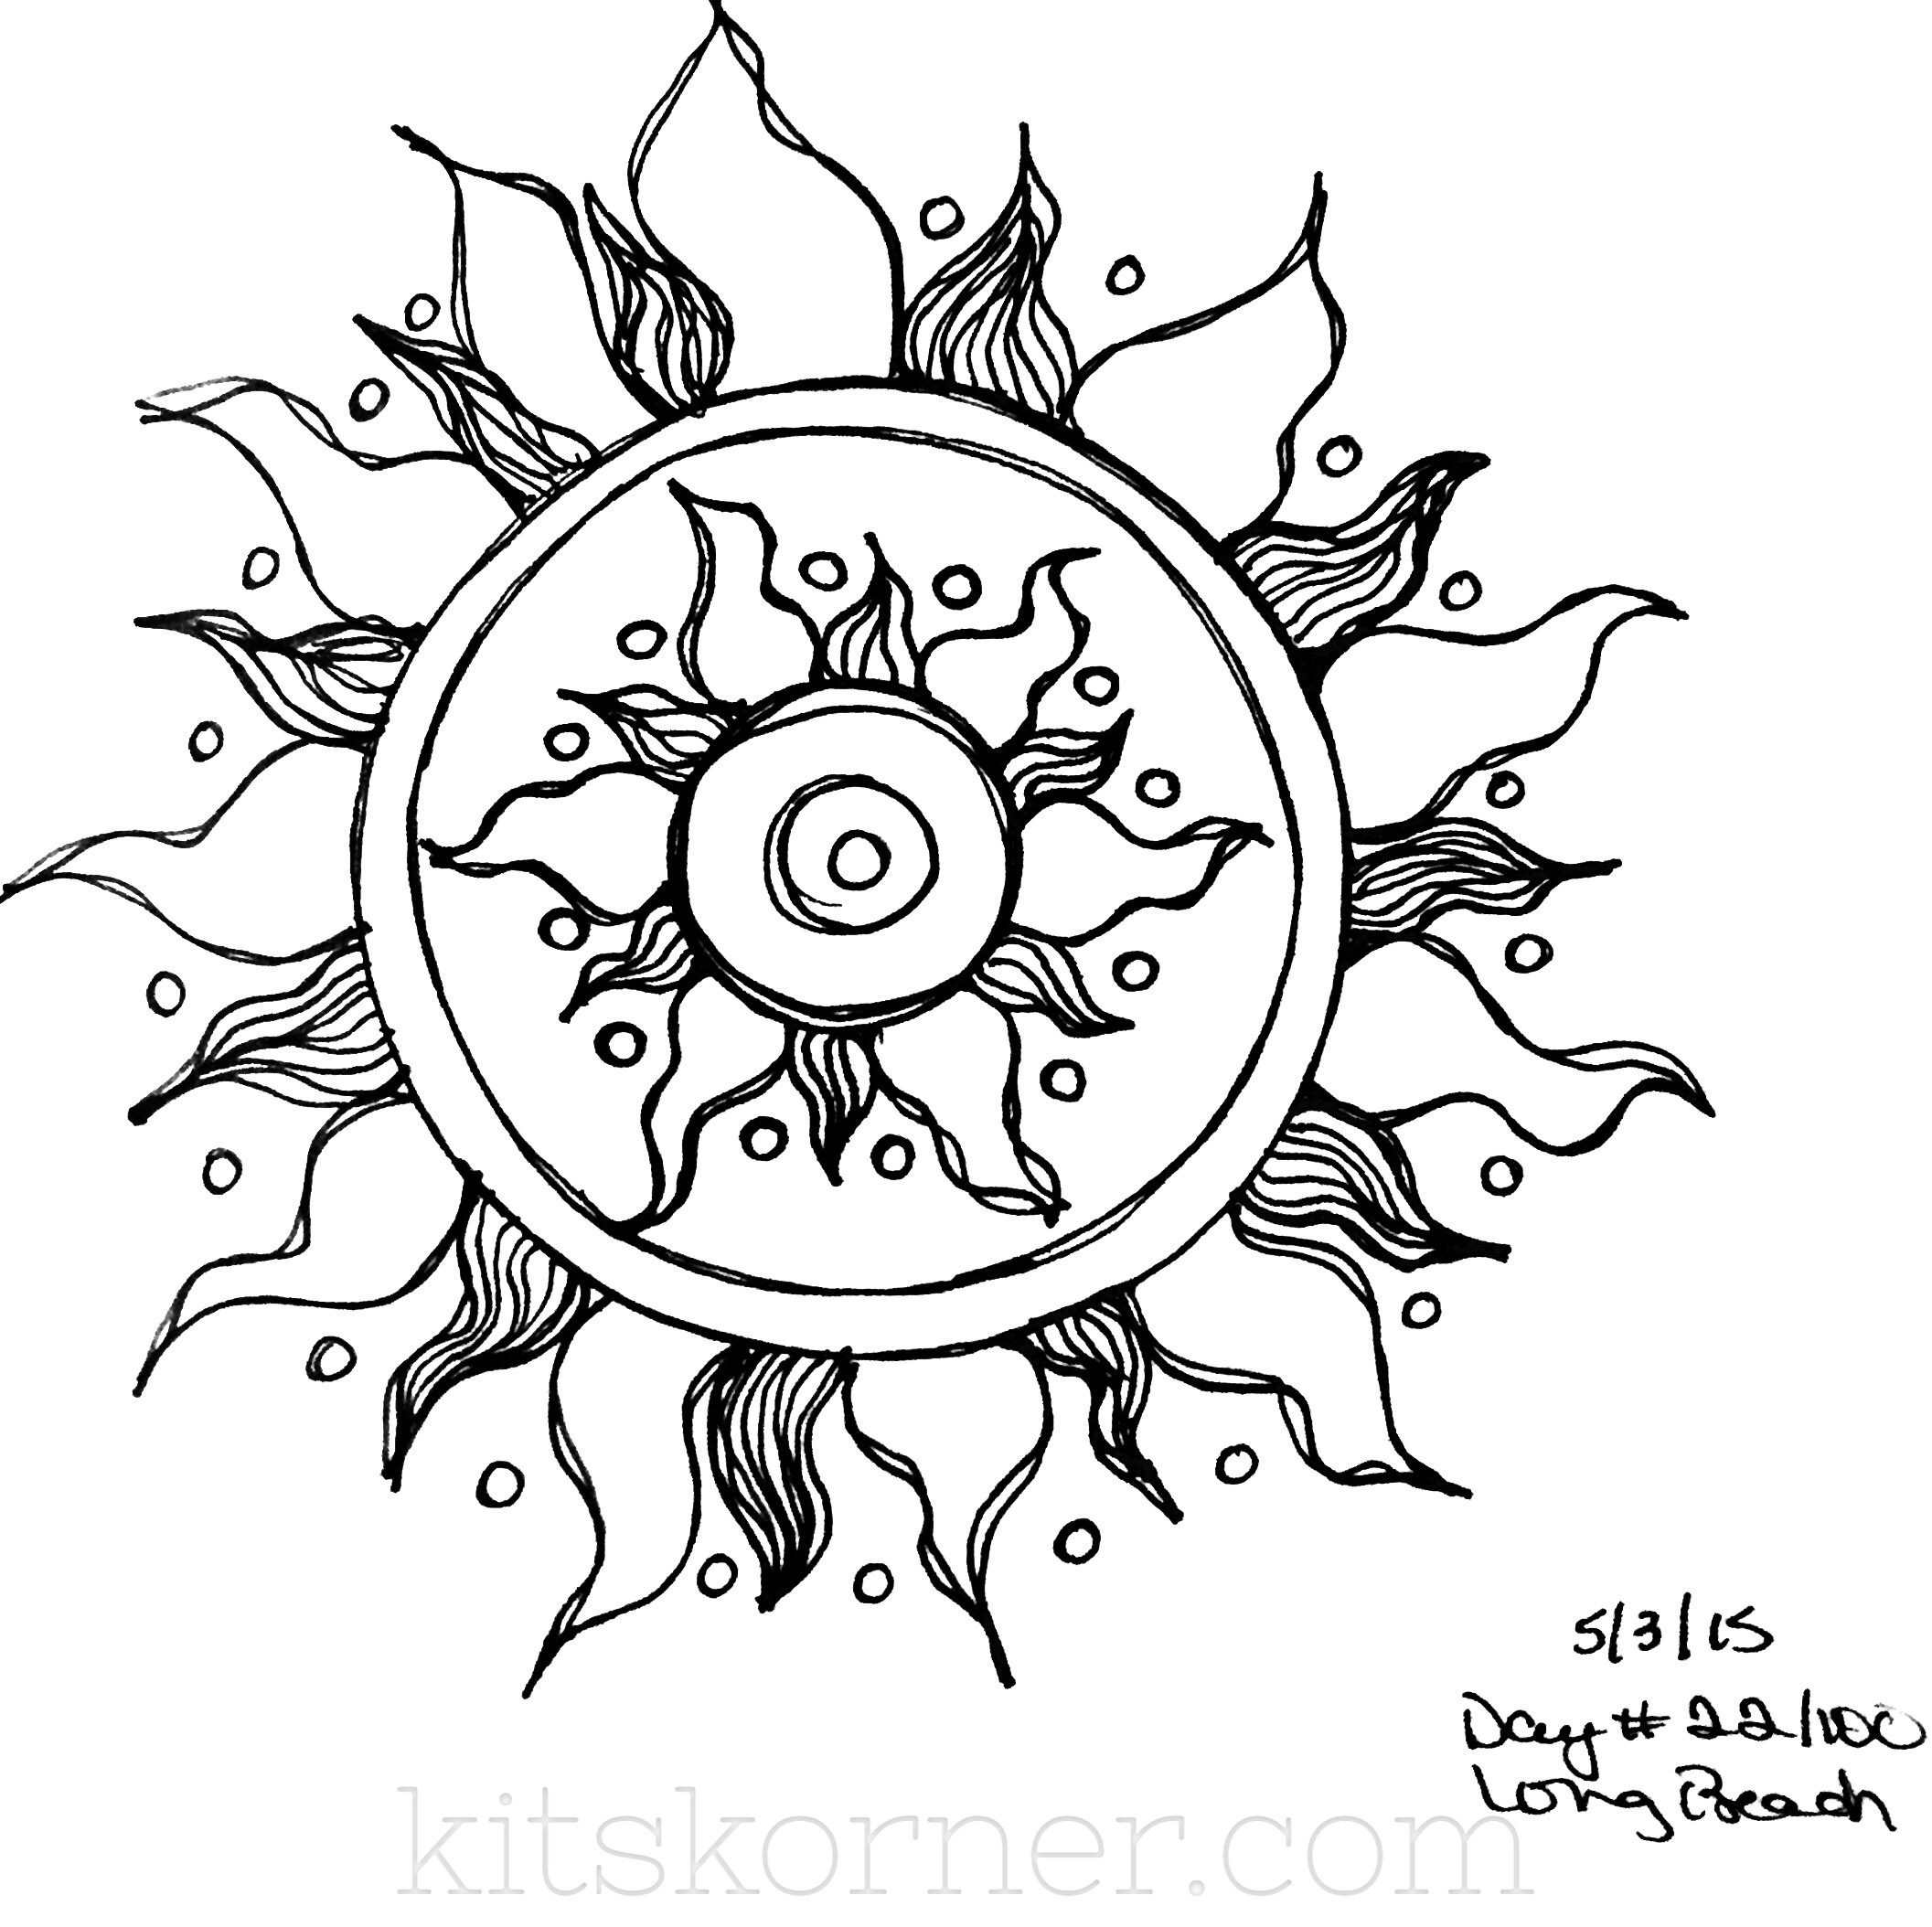 Sketchbook 100 mandalas challenge week 4 this one came about as we were watching tangled for the 948th time if youve seen the movie then you know the symbol in the movie is similar to this biocorpaavc Choice Image